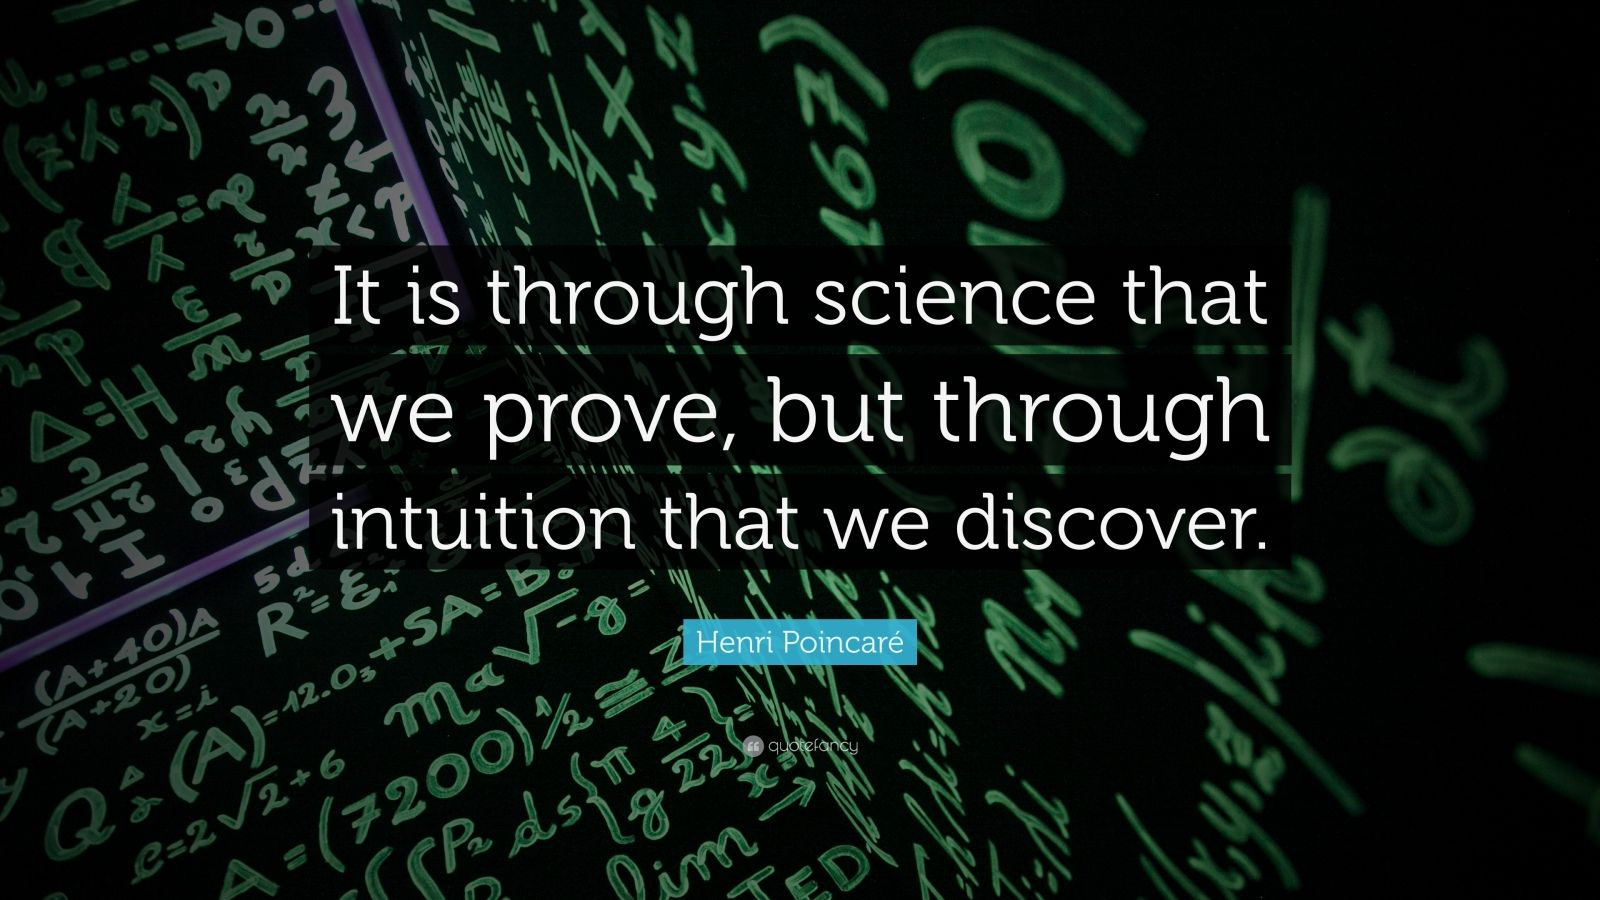 """Henri Poincaré Quote: """"It is through science that we prove, but through intuition that we discover."""""""